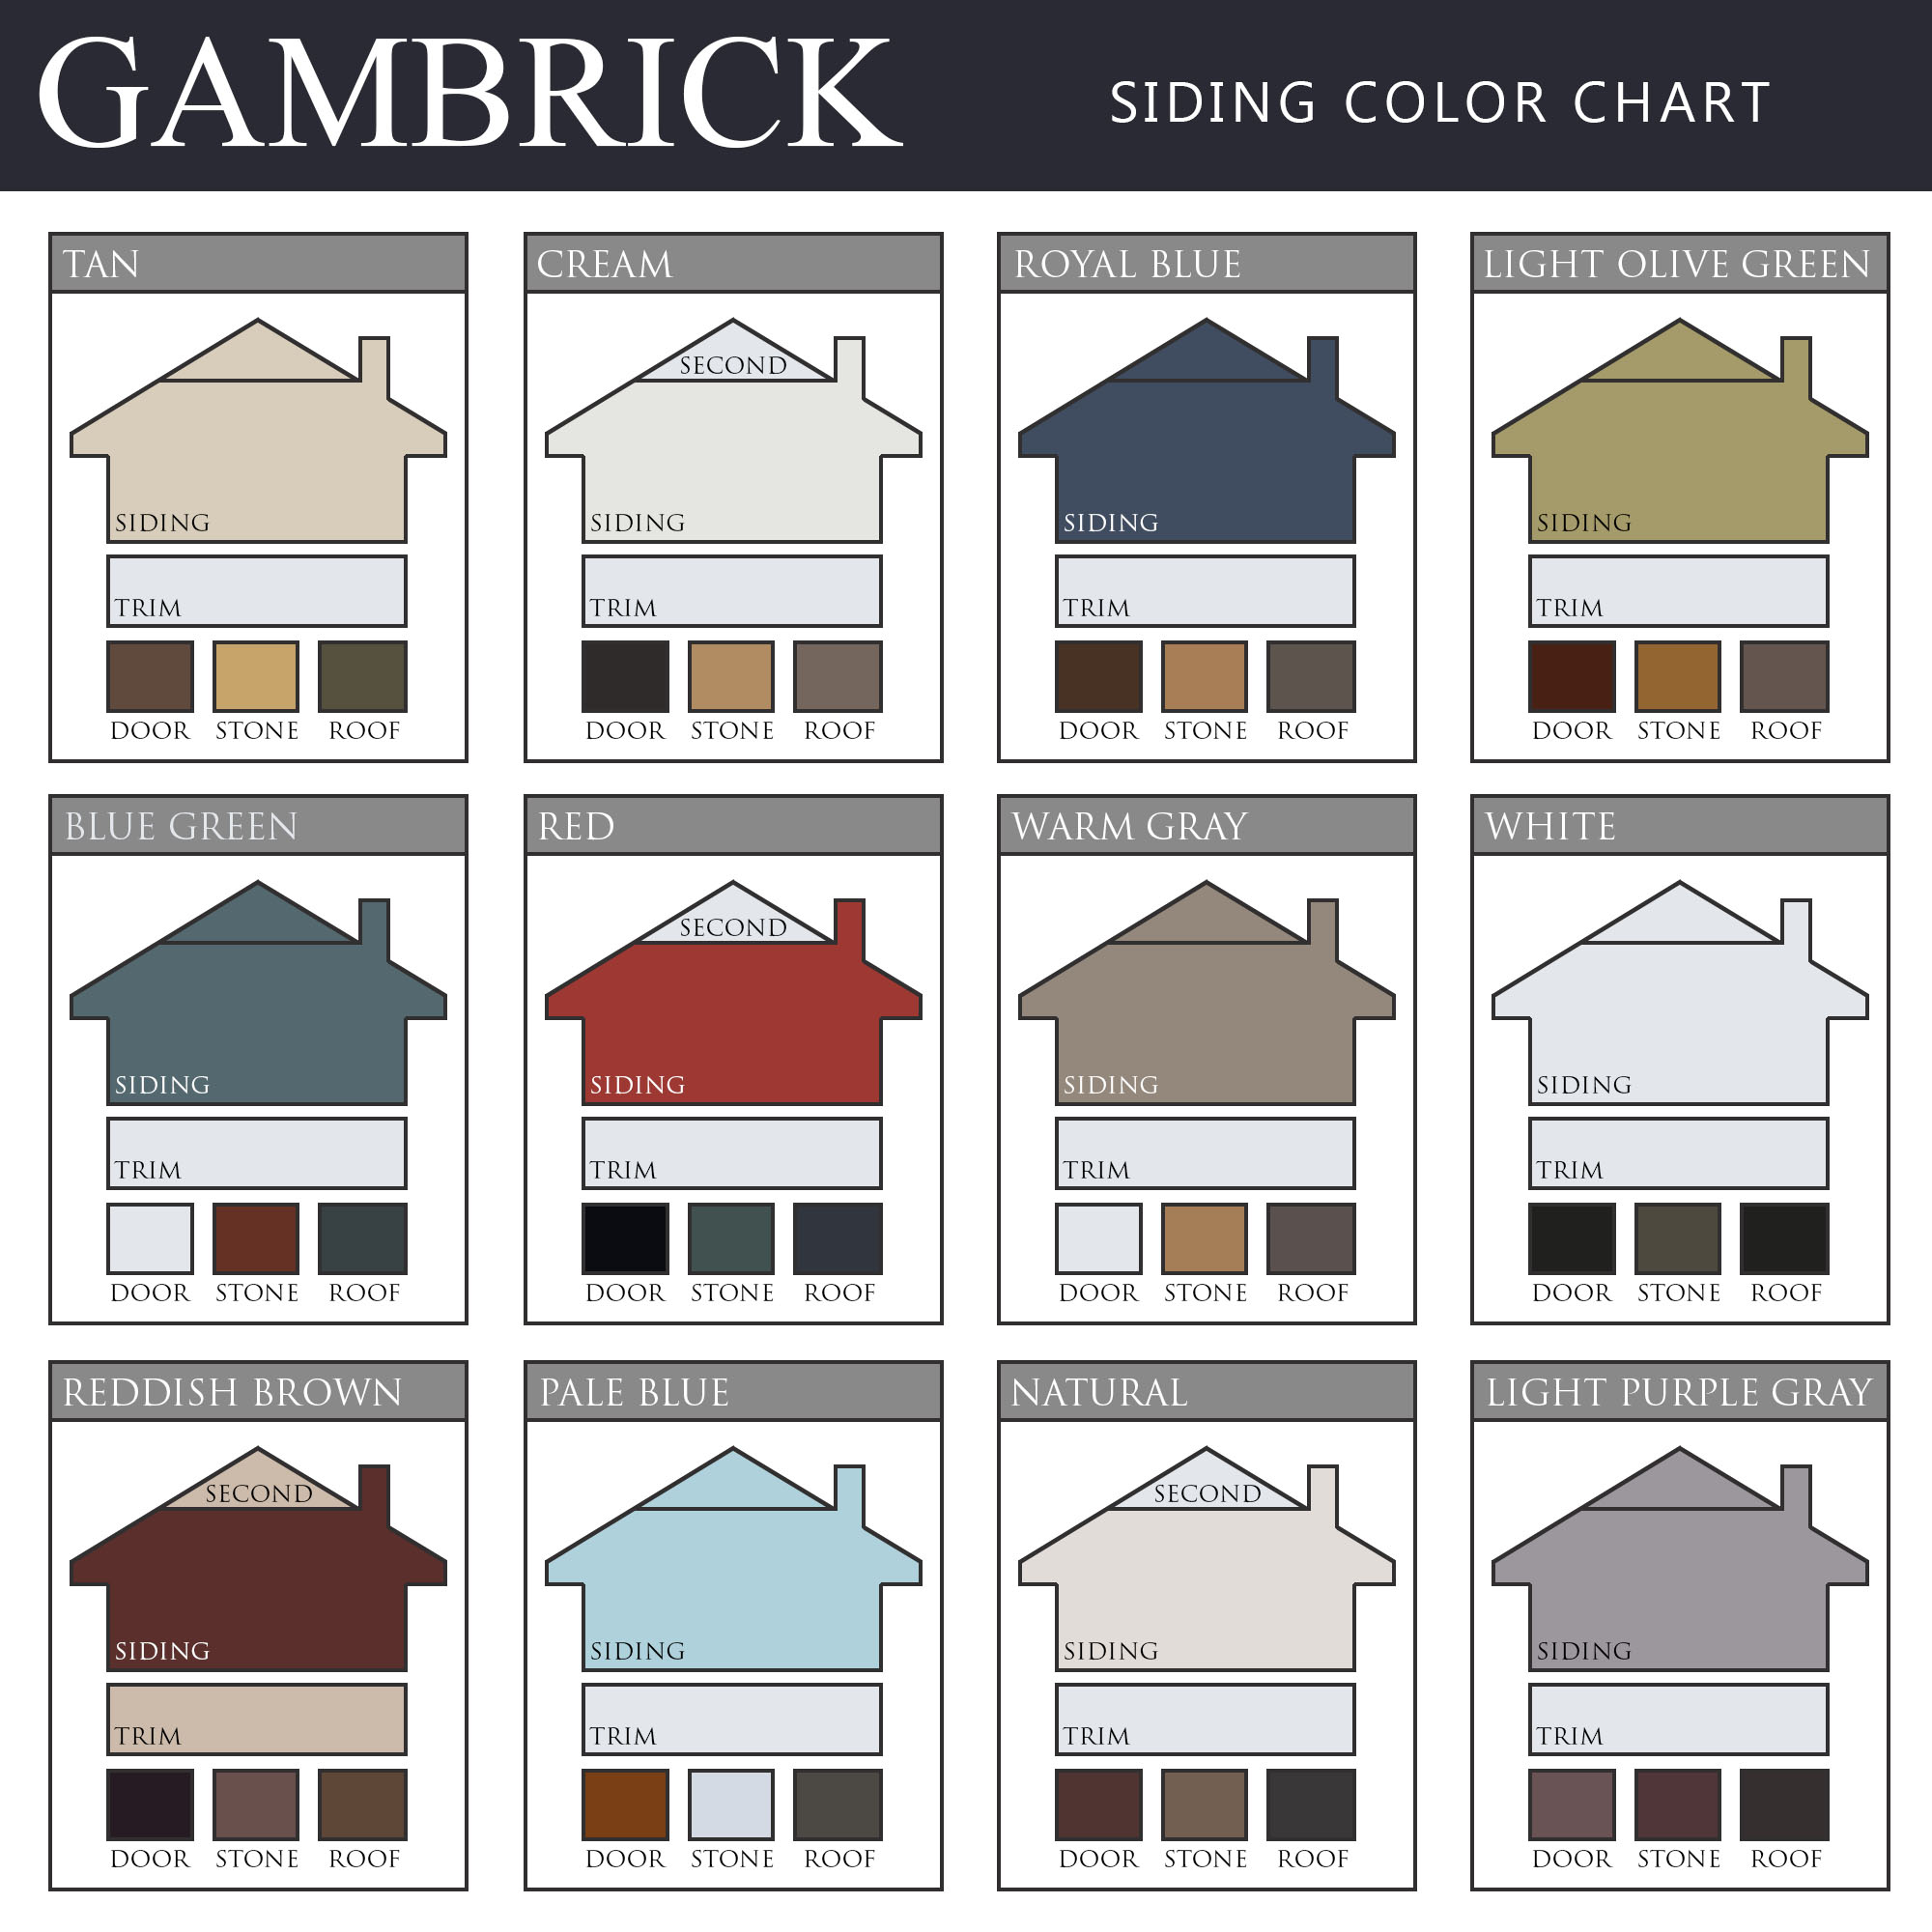 vinyl siding color chart infographic - Gambrick